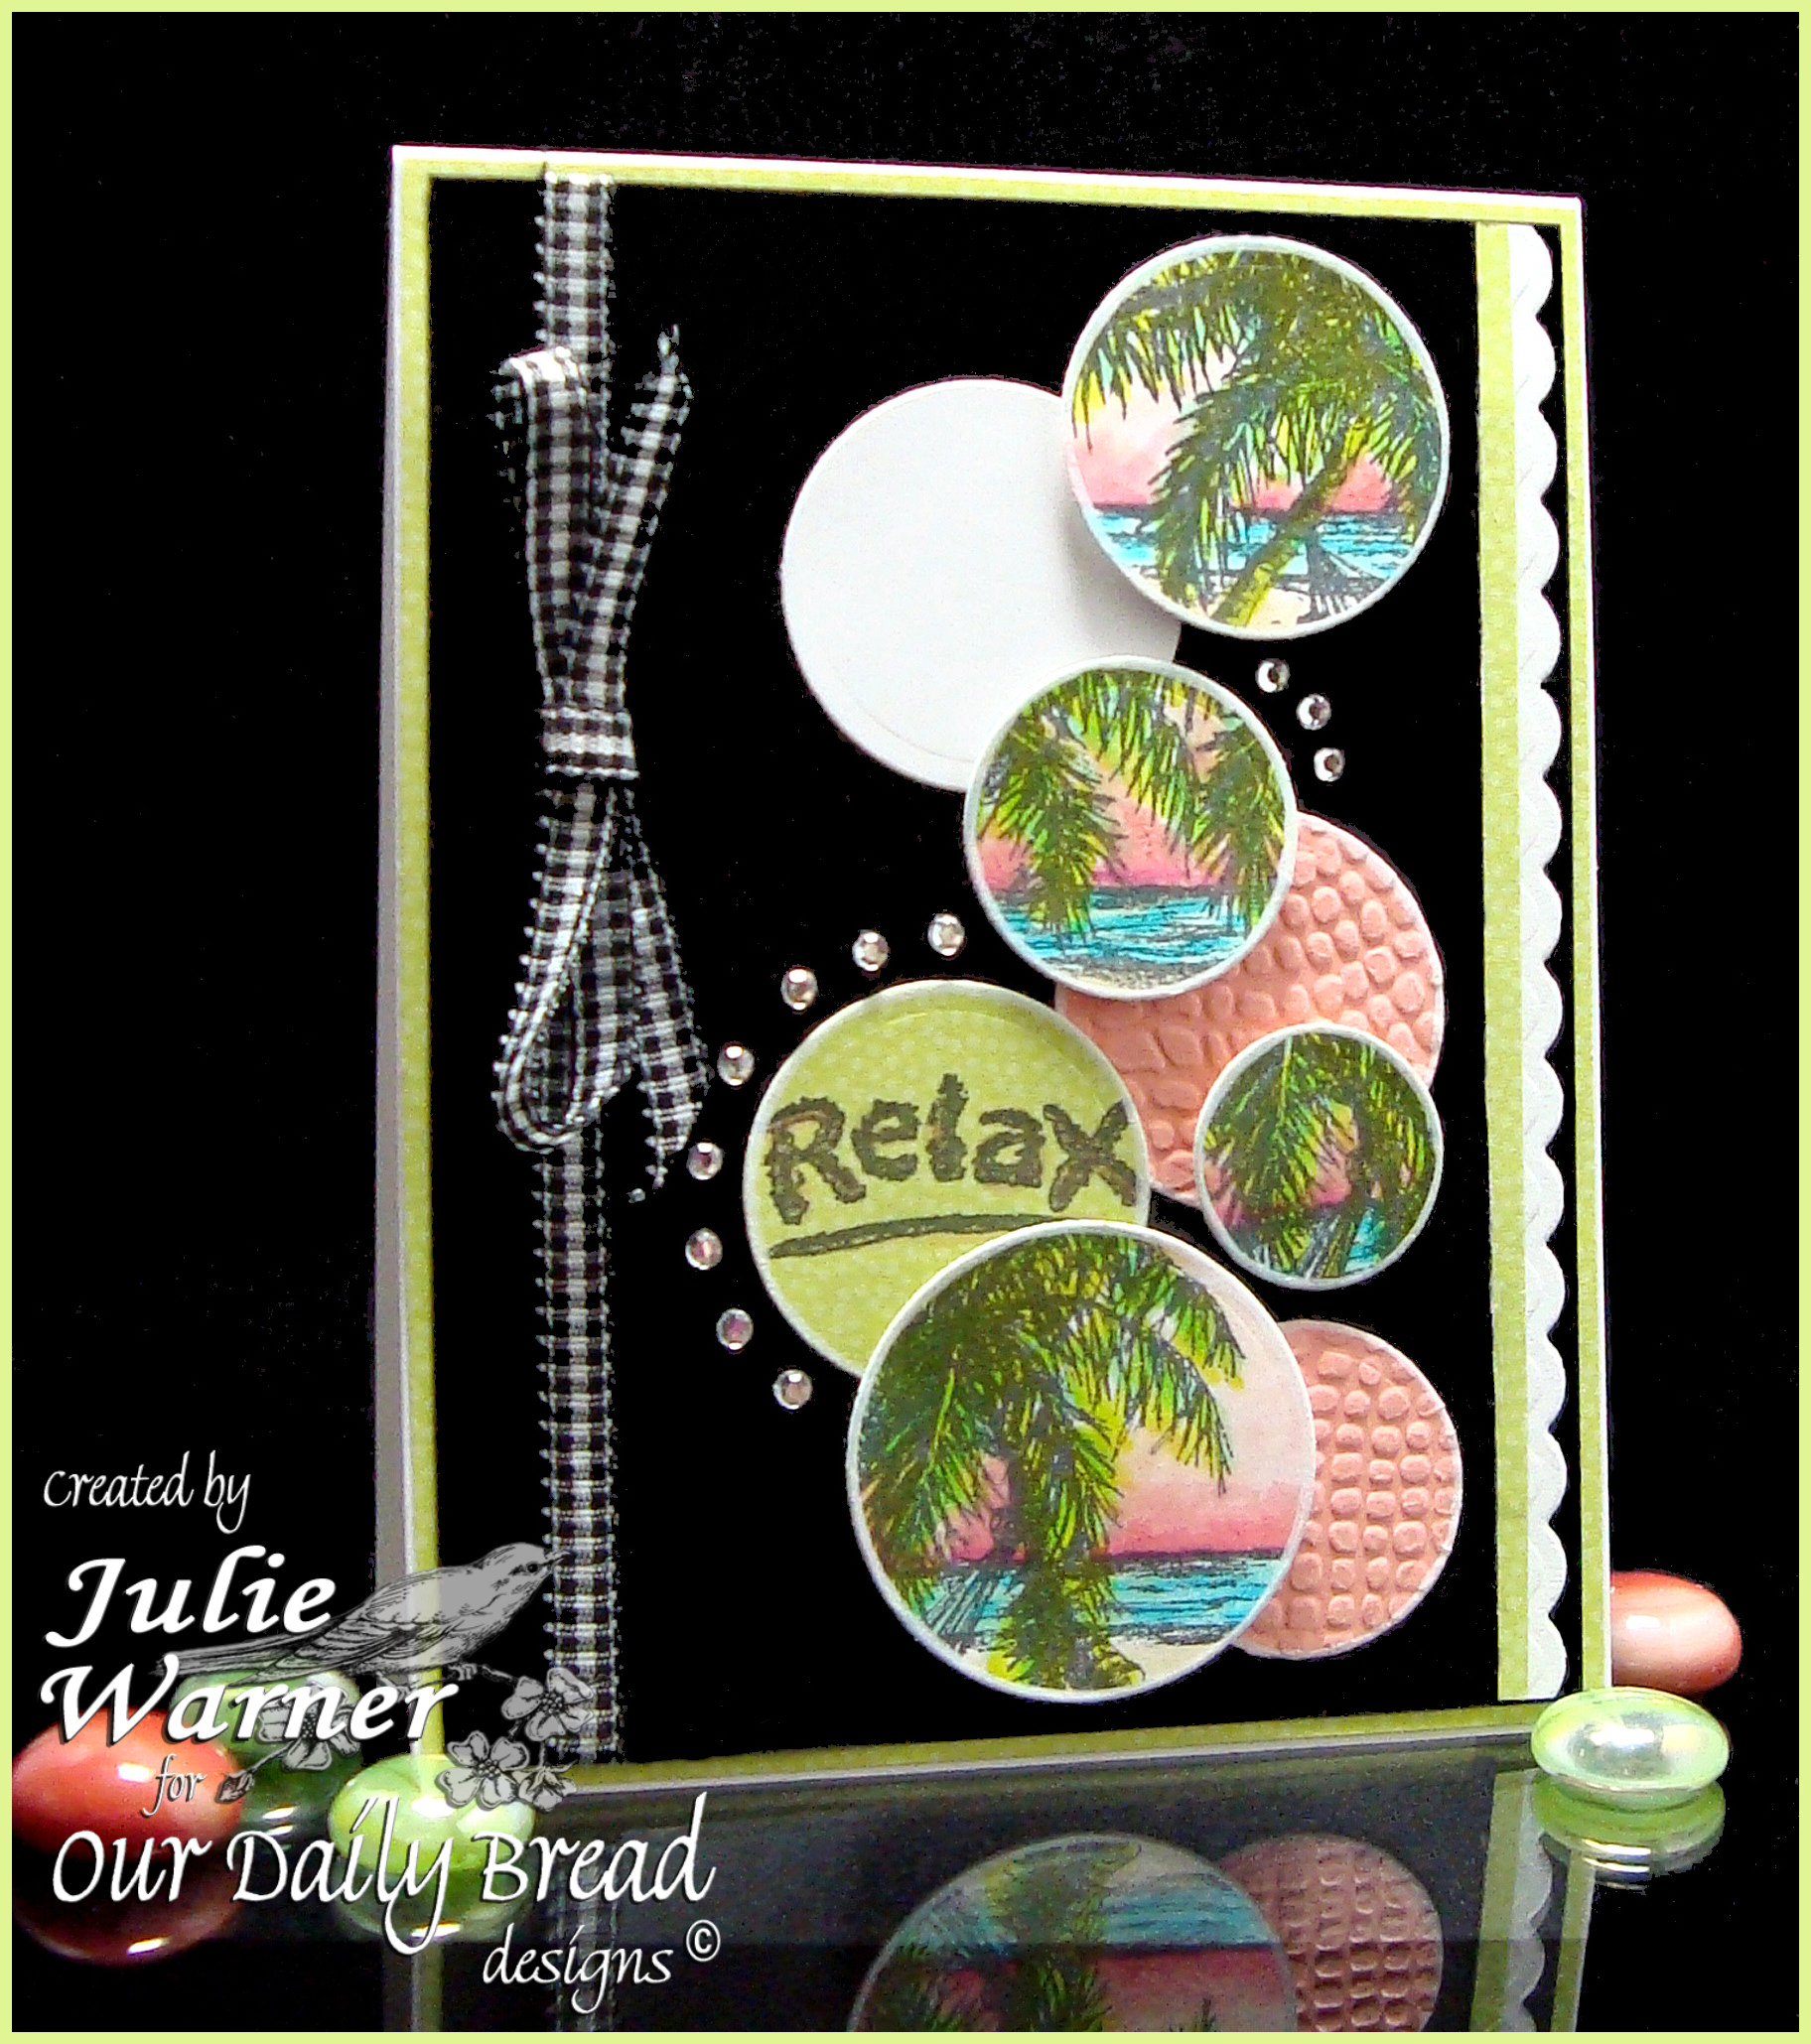 Julie Warner - justwritedesigns http://thewritestuff.justwritedesigns.com/